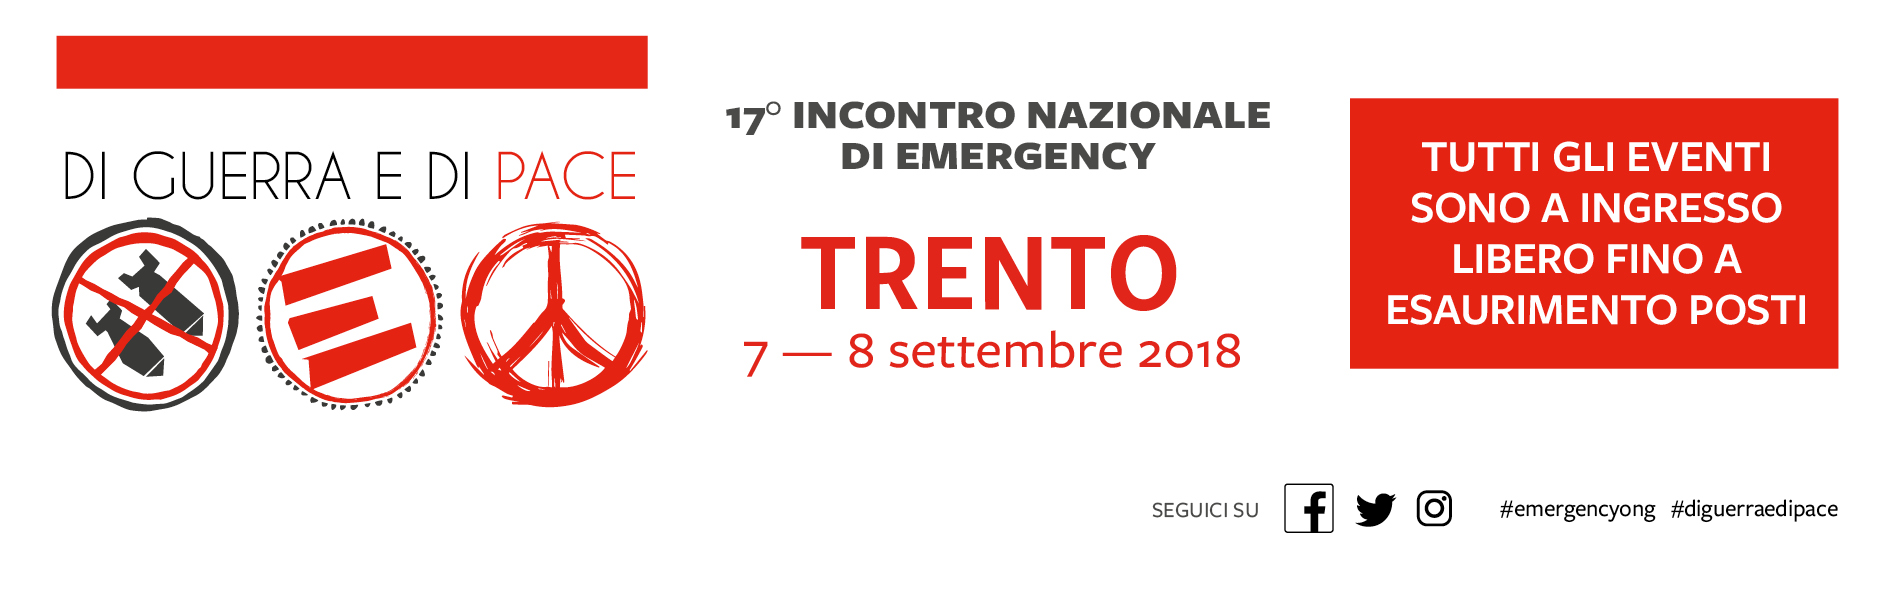 Incontro nazionale emergency 2018 [PUNIQRANDLINE-(au-dating-names.txt) 22